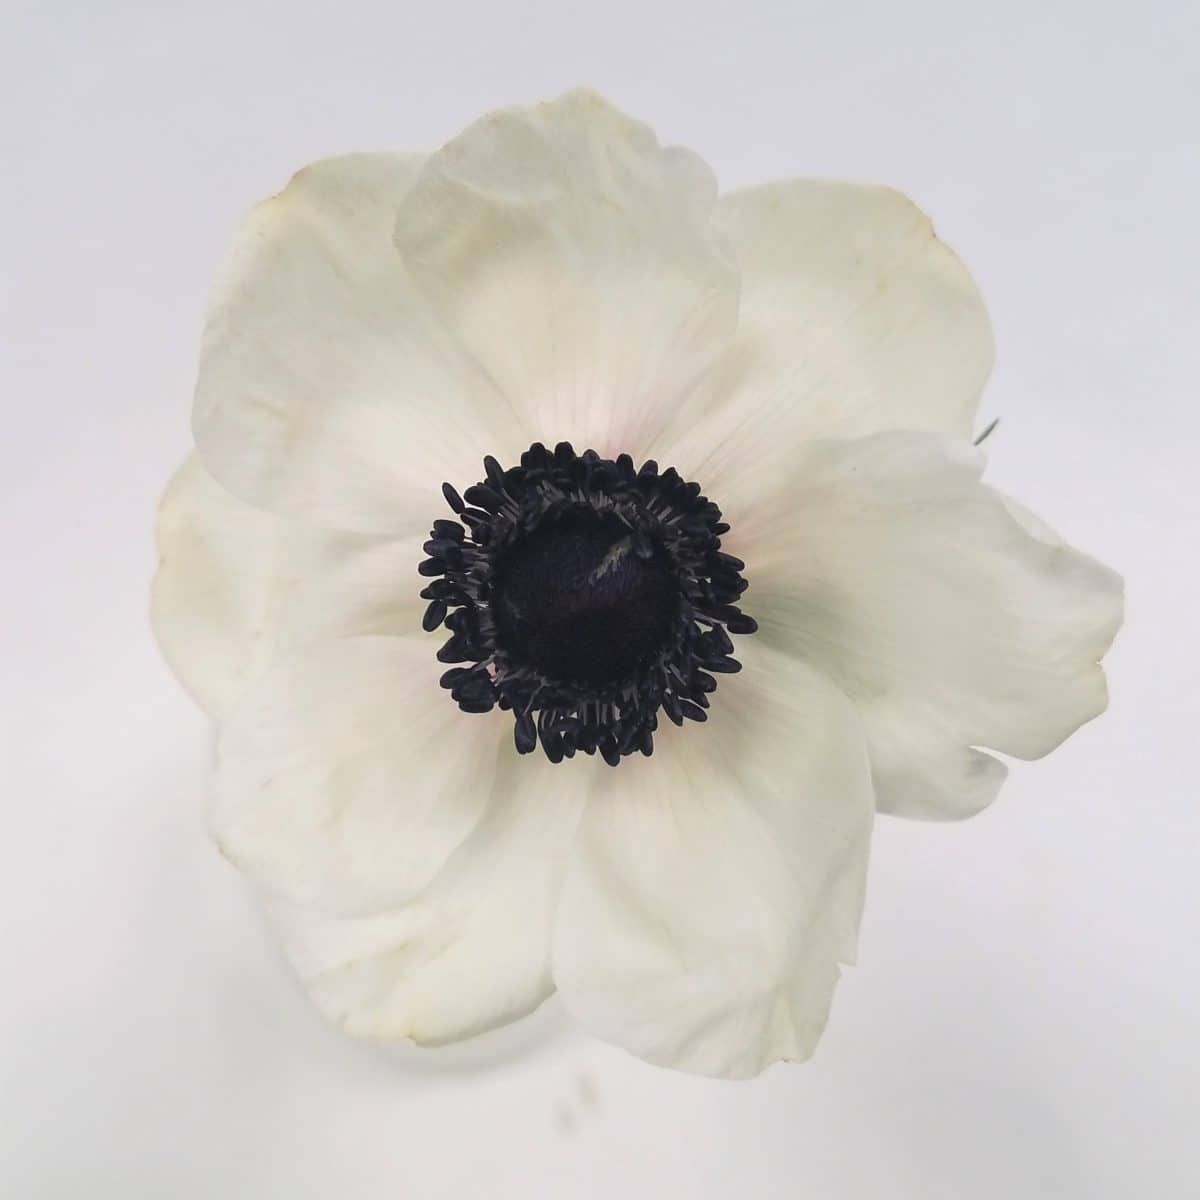 Anemone White Black Center Wholesale Flowers White Anemone Flowers